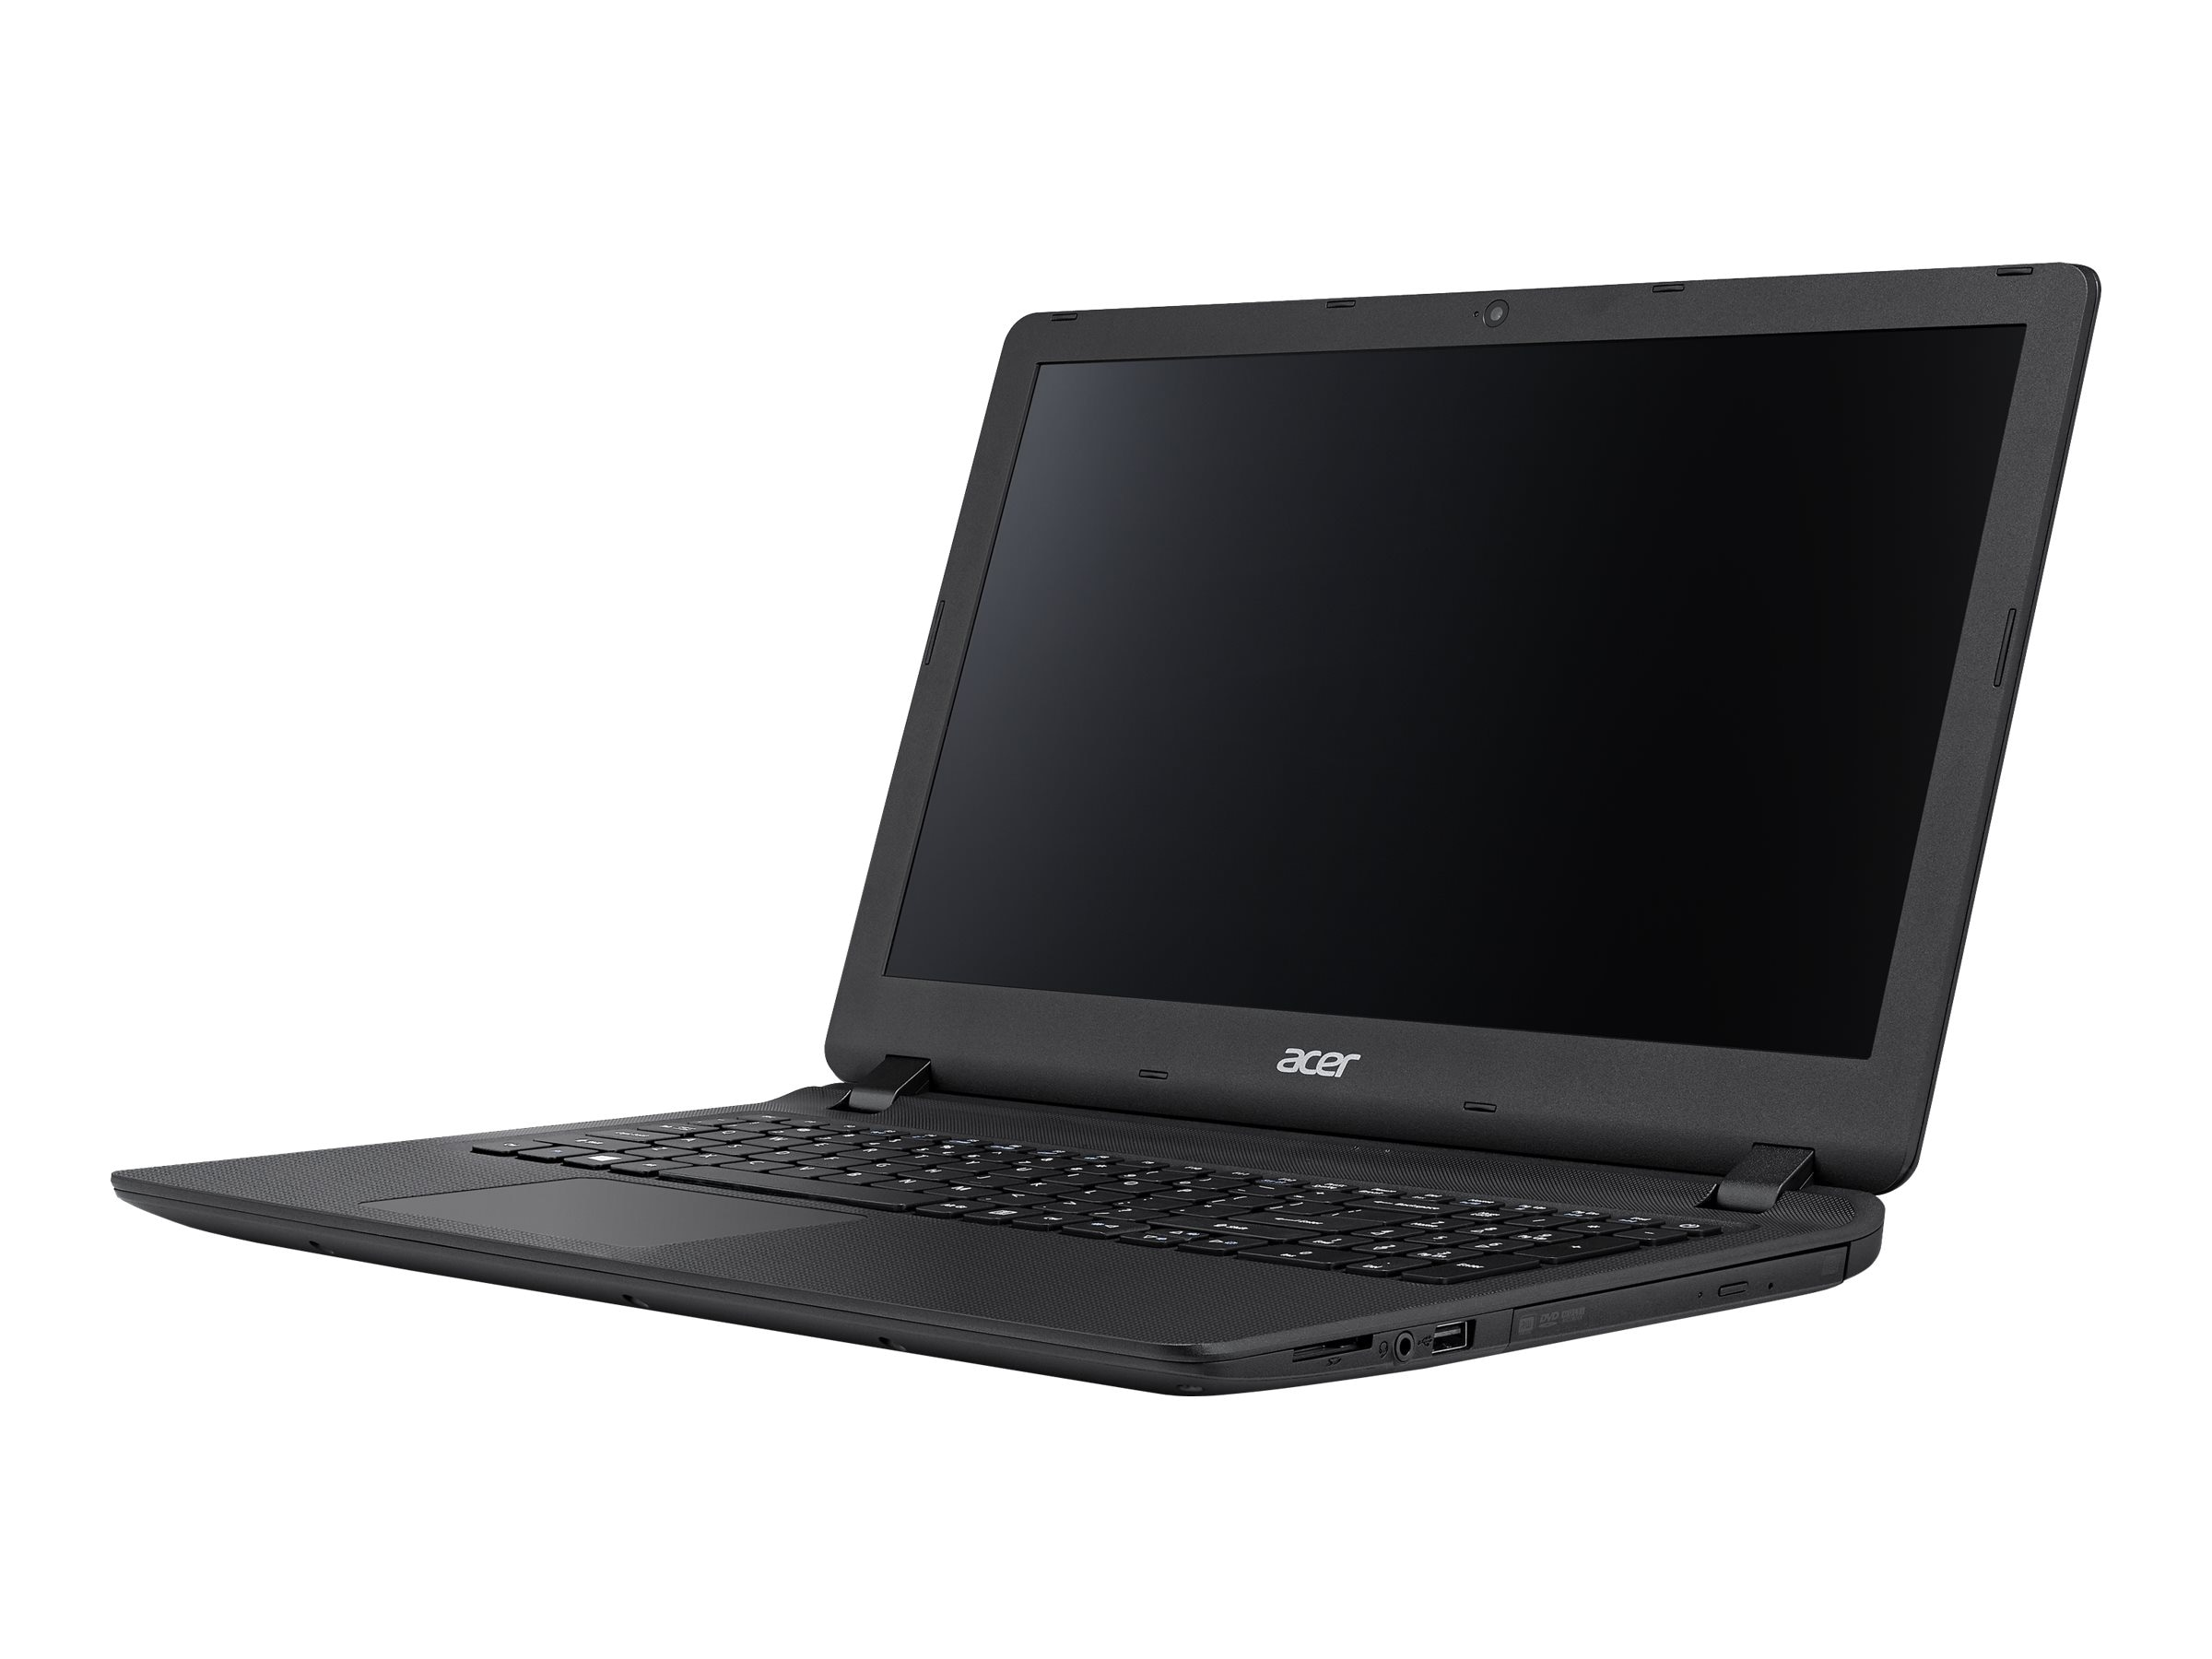 Acer Aspire ES1-533-C2PE 1.1GHz Celeron 17.3in display, NX.GFTAA.007